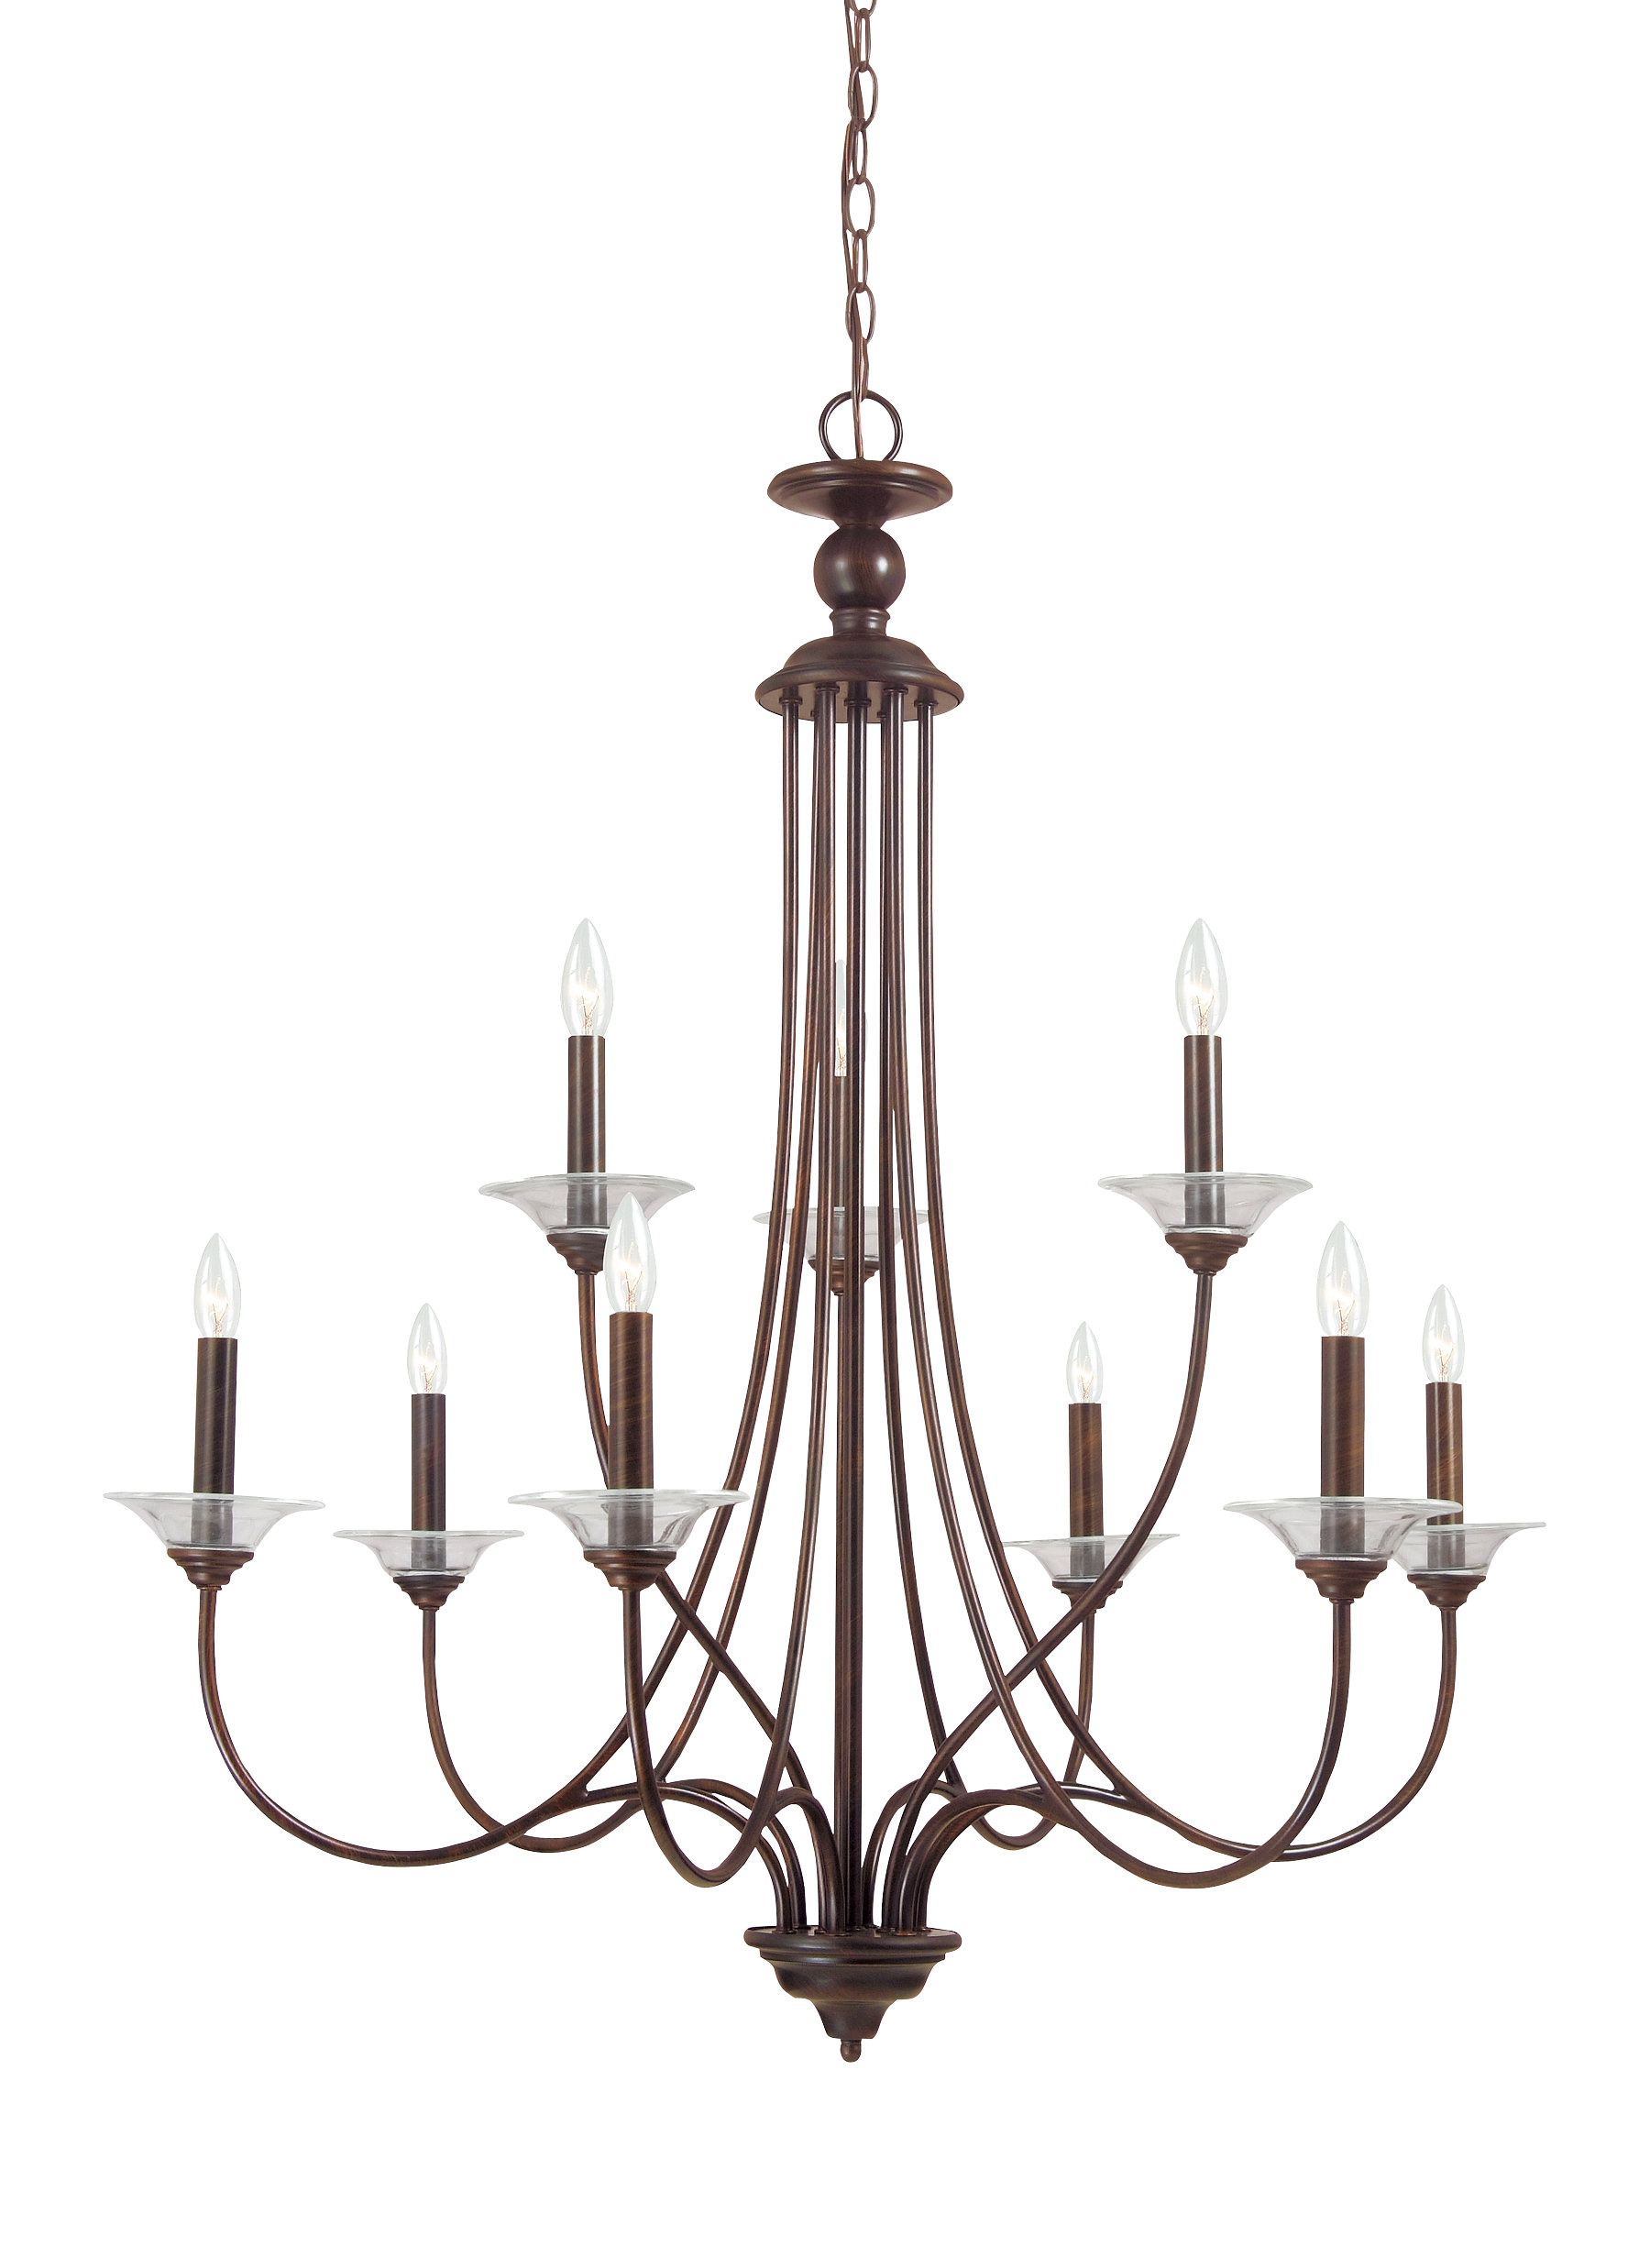 Kenedy 9-Light Candle Style Chandeliers within Newest Barbro 9-Light Chandelier